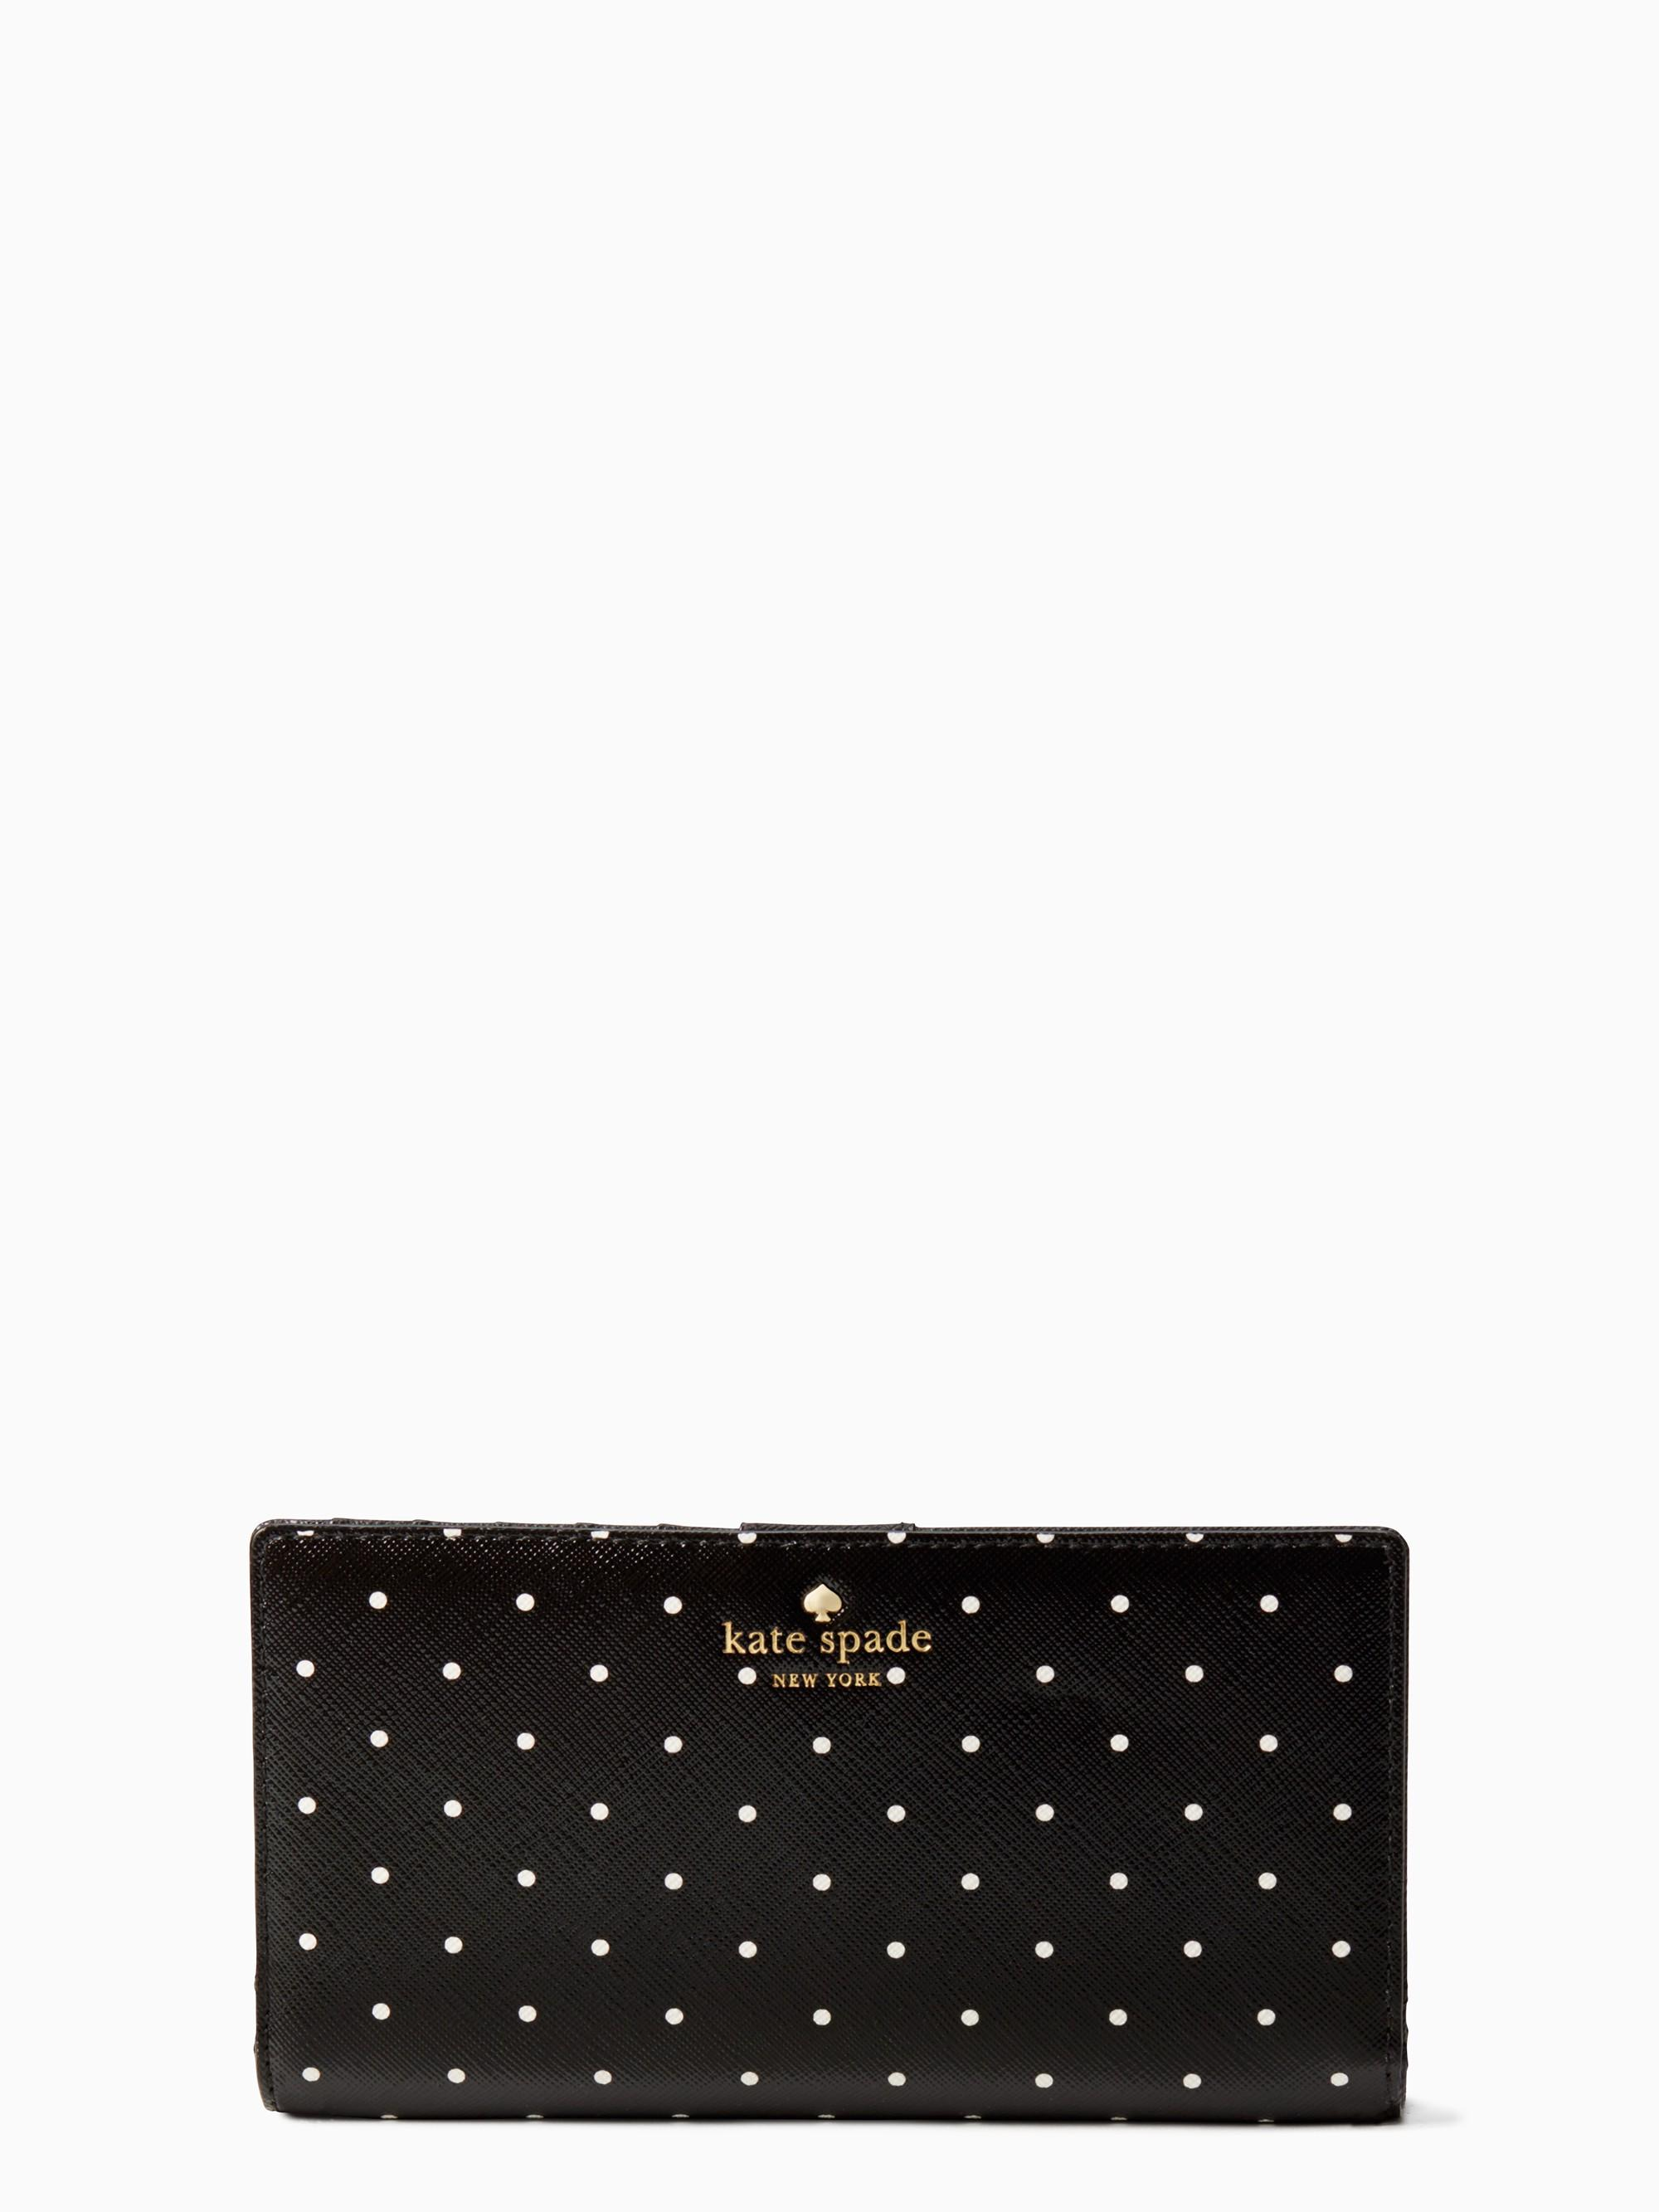 Kate Spade Brooks Drive Stacy In Black/cream